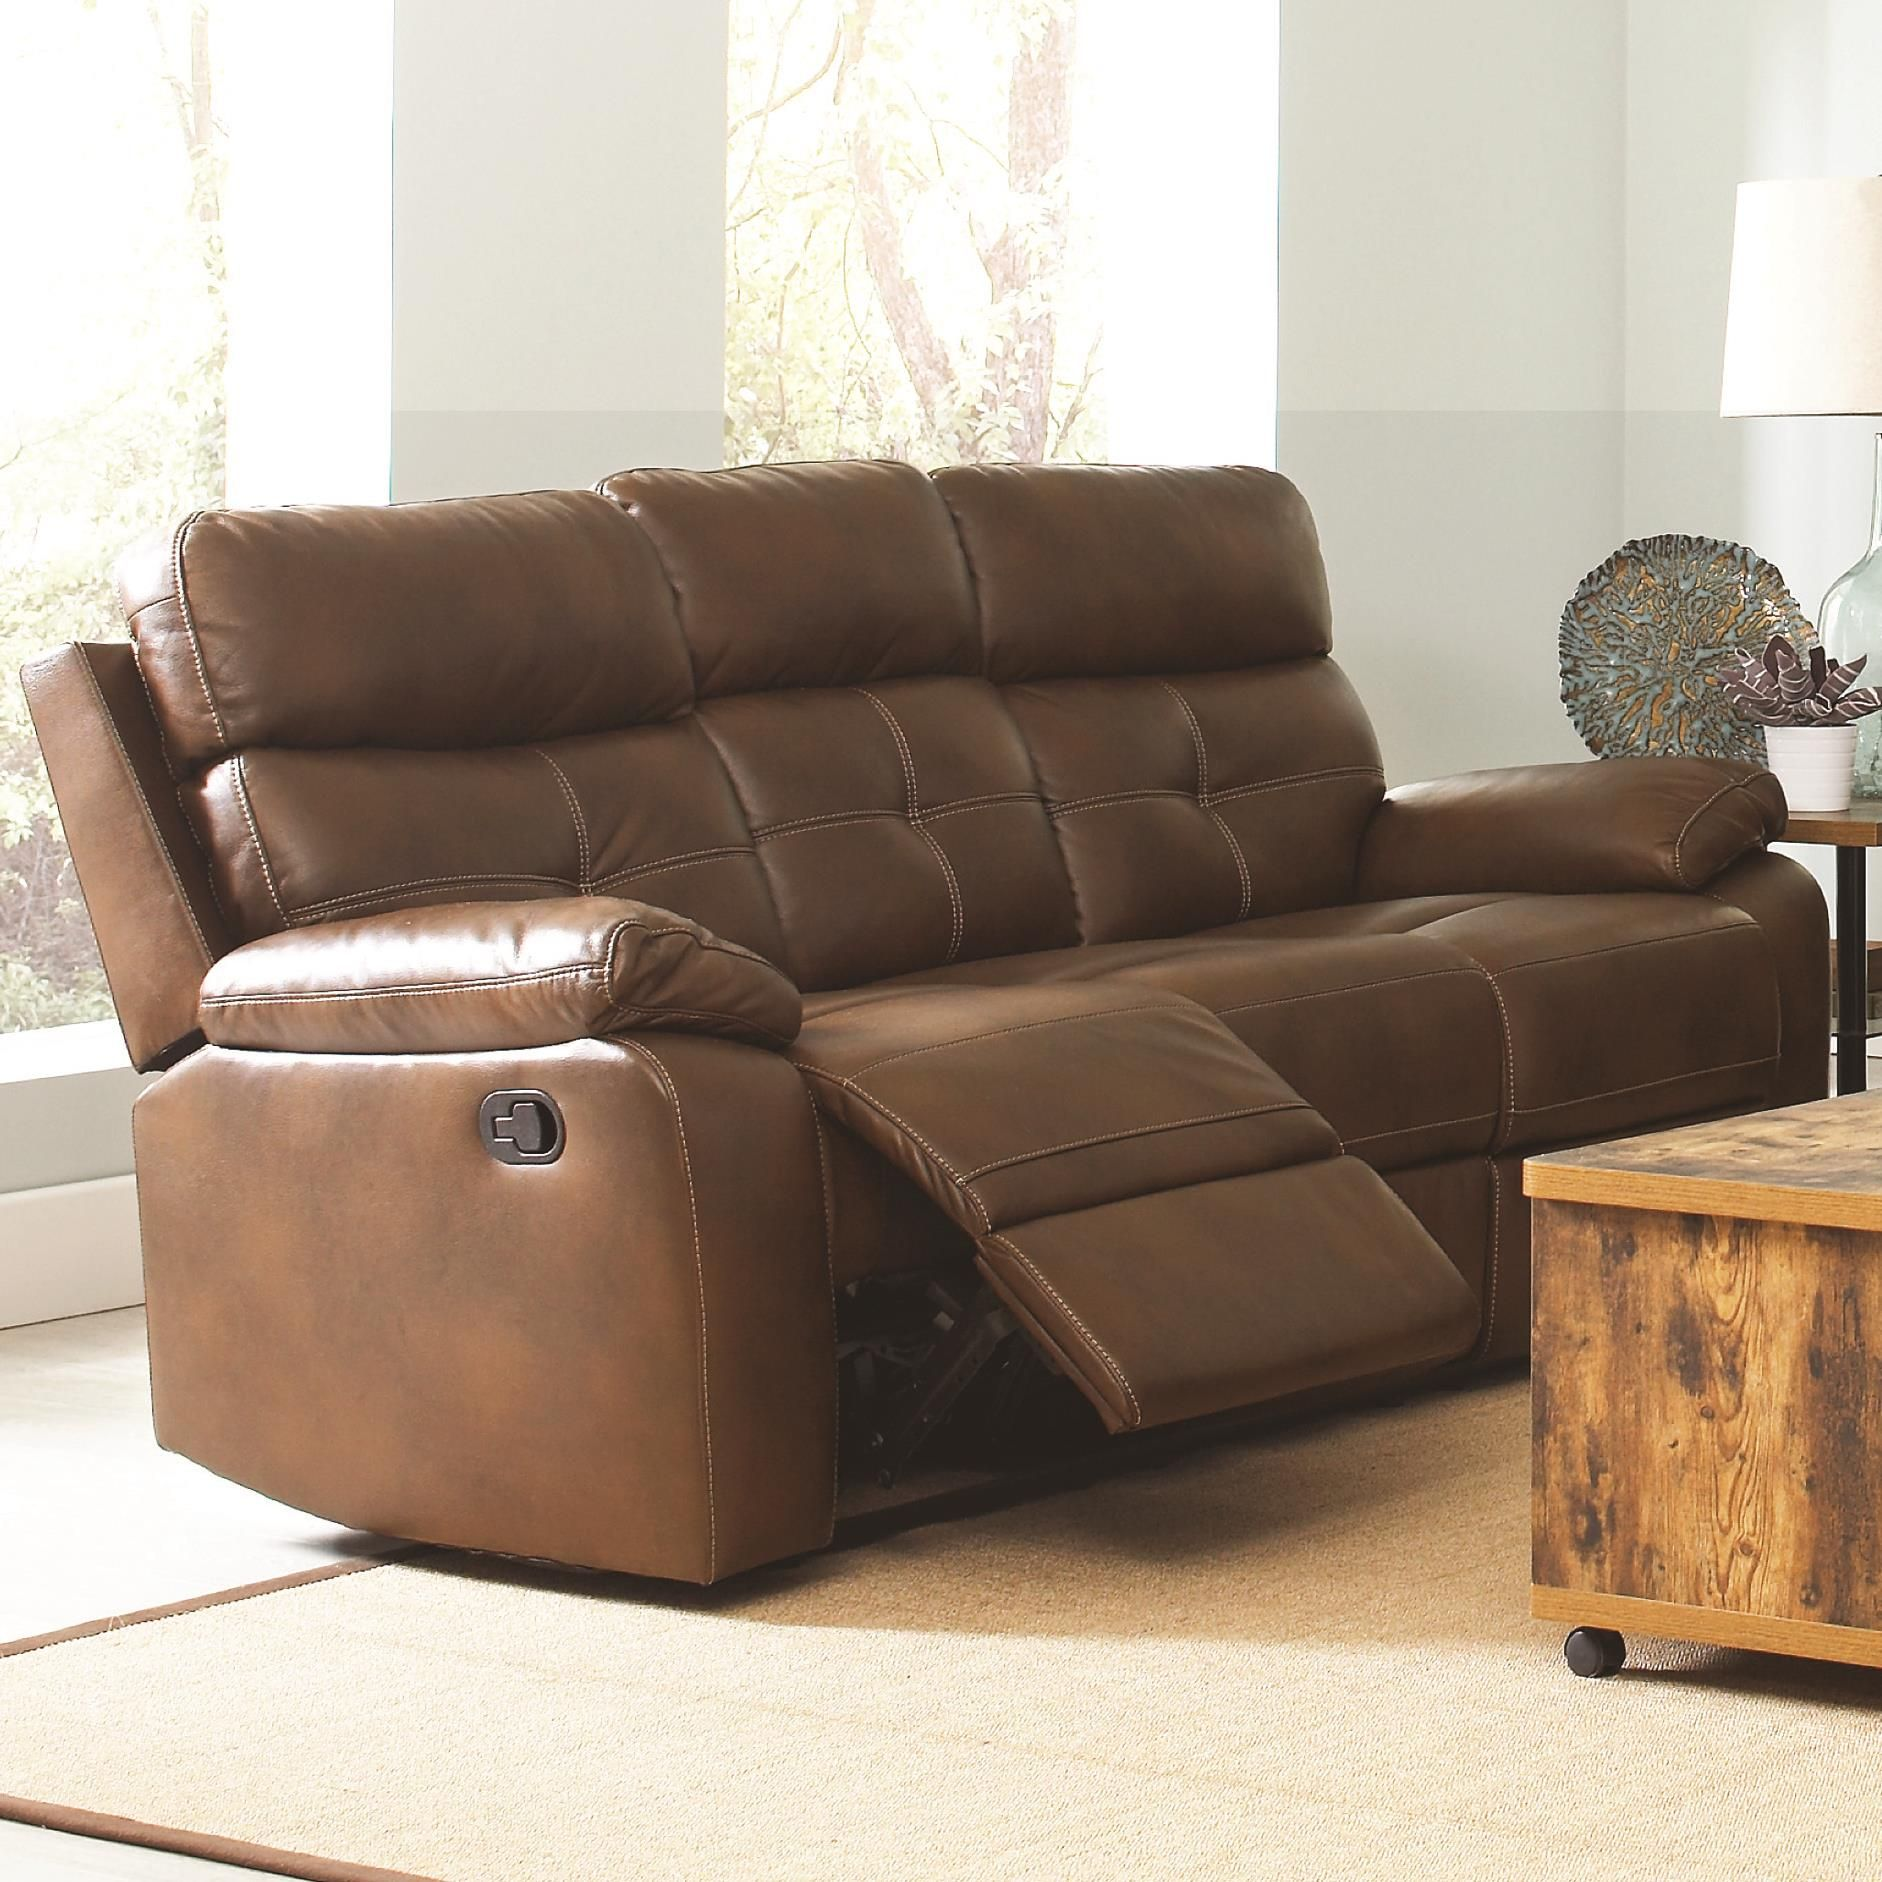 Awe Inspiring Damiano Casual Faux Leather Reclining Sofa With Button Tuft Pdpeps Interior Chair Design Pdpepsorg